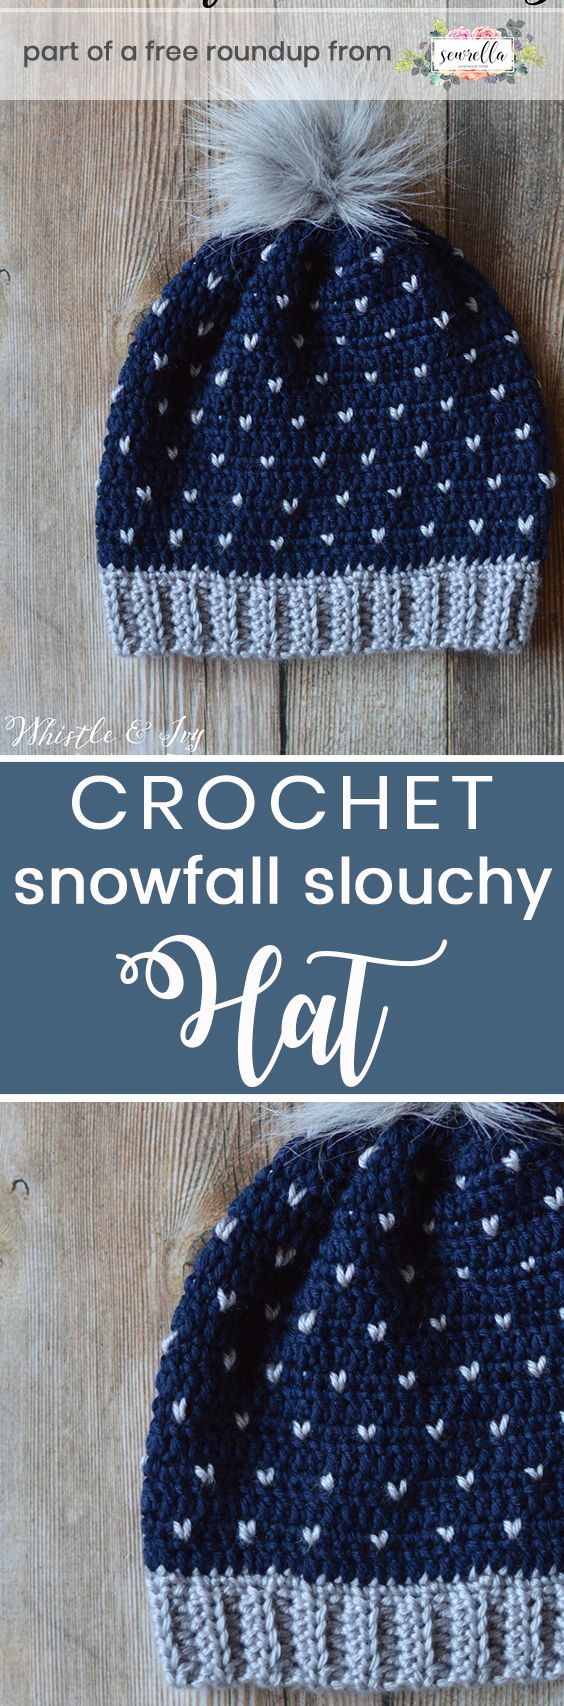 Free Crochet Patterns That Look Knit | Pinterest | Mütze, Häkeln und ...